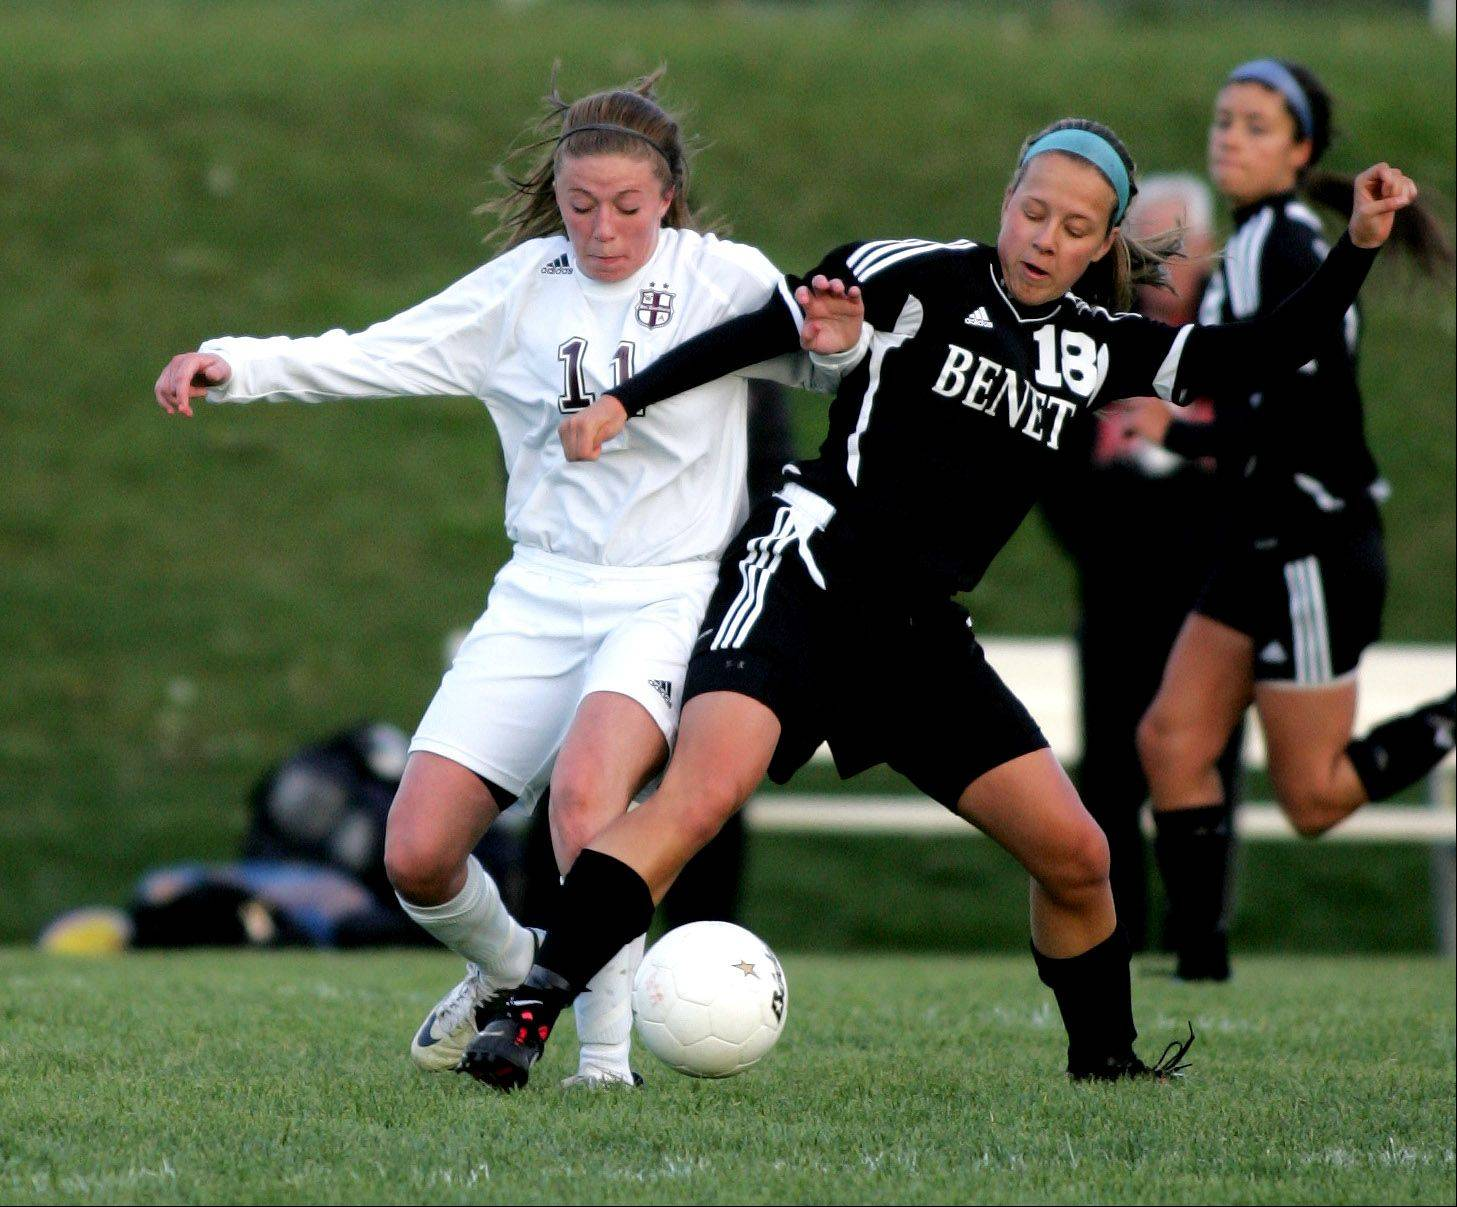 Anne Hillstrom, left, of Wheaton Academy and Katie Liber, right, of Benet get tangled up during girls soccer Monday in West Chicago.